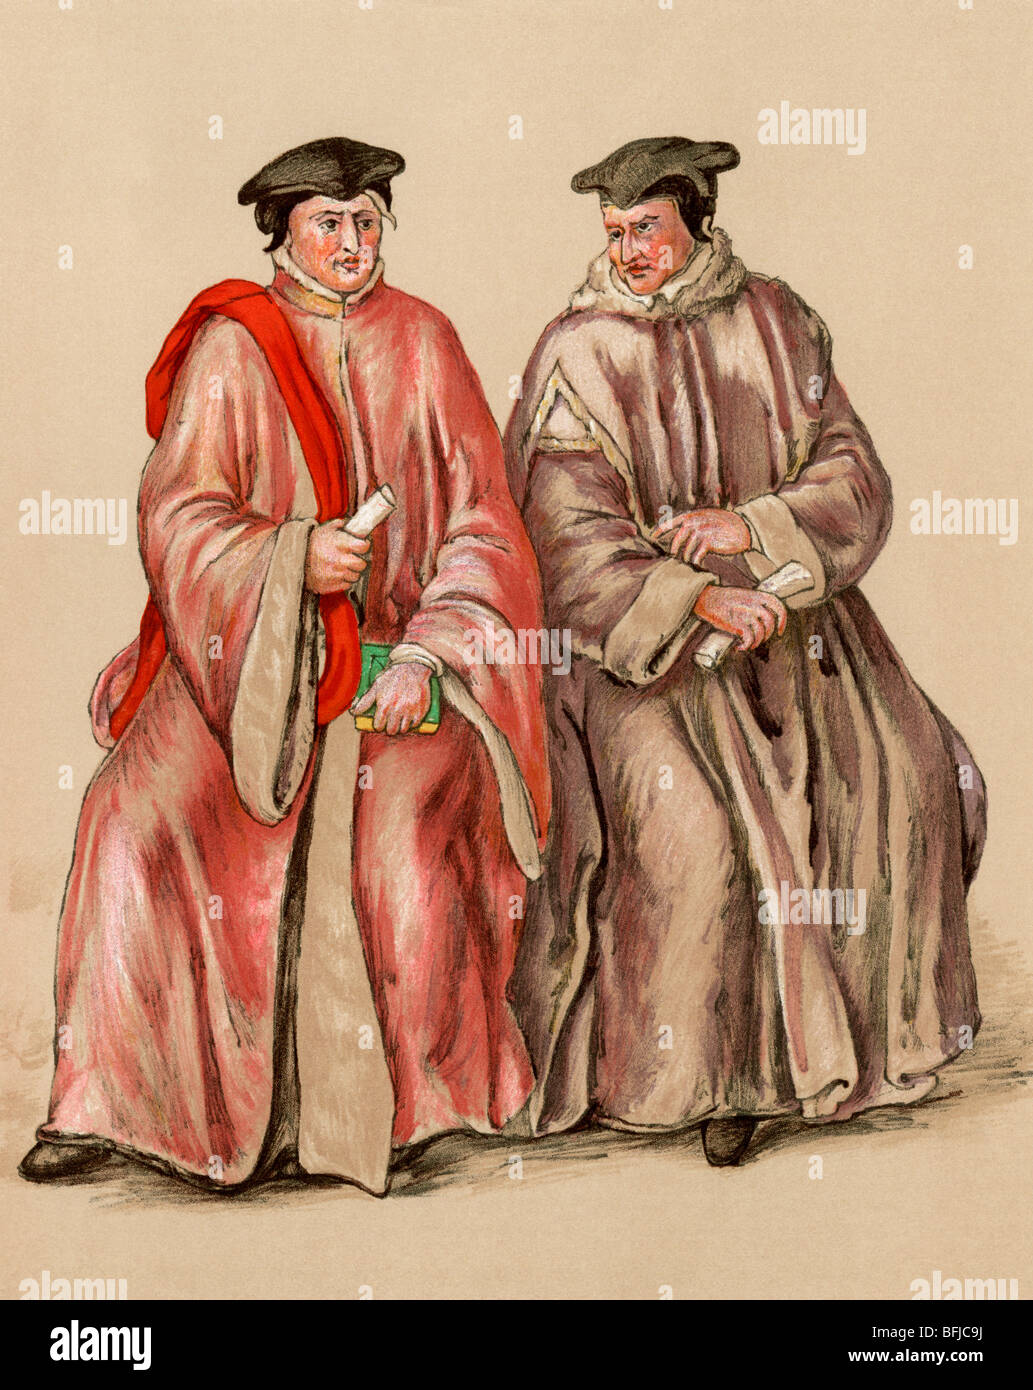 English judges in their robes during Elizabeth's reign, 1500s. Color lithograph - Stock Image